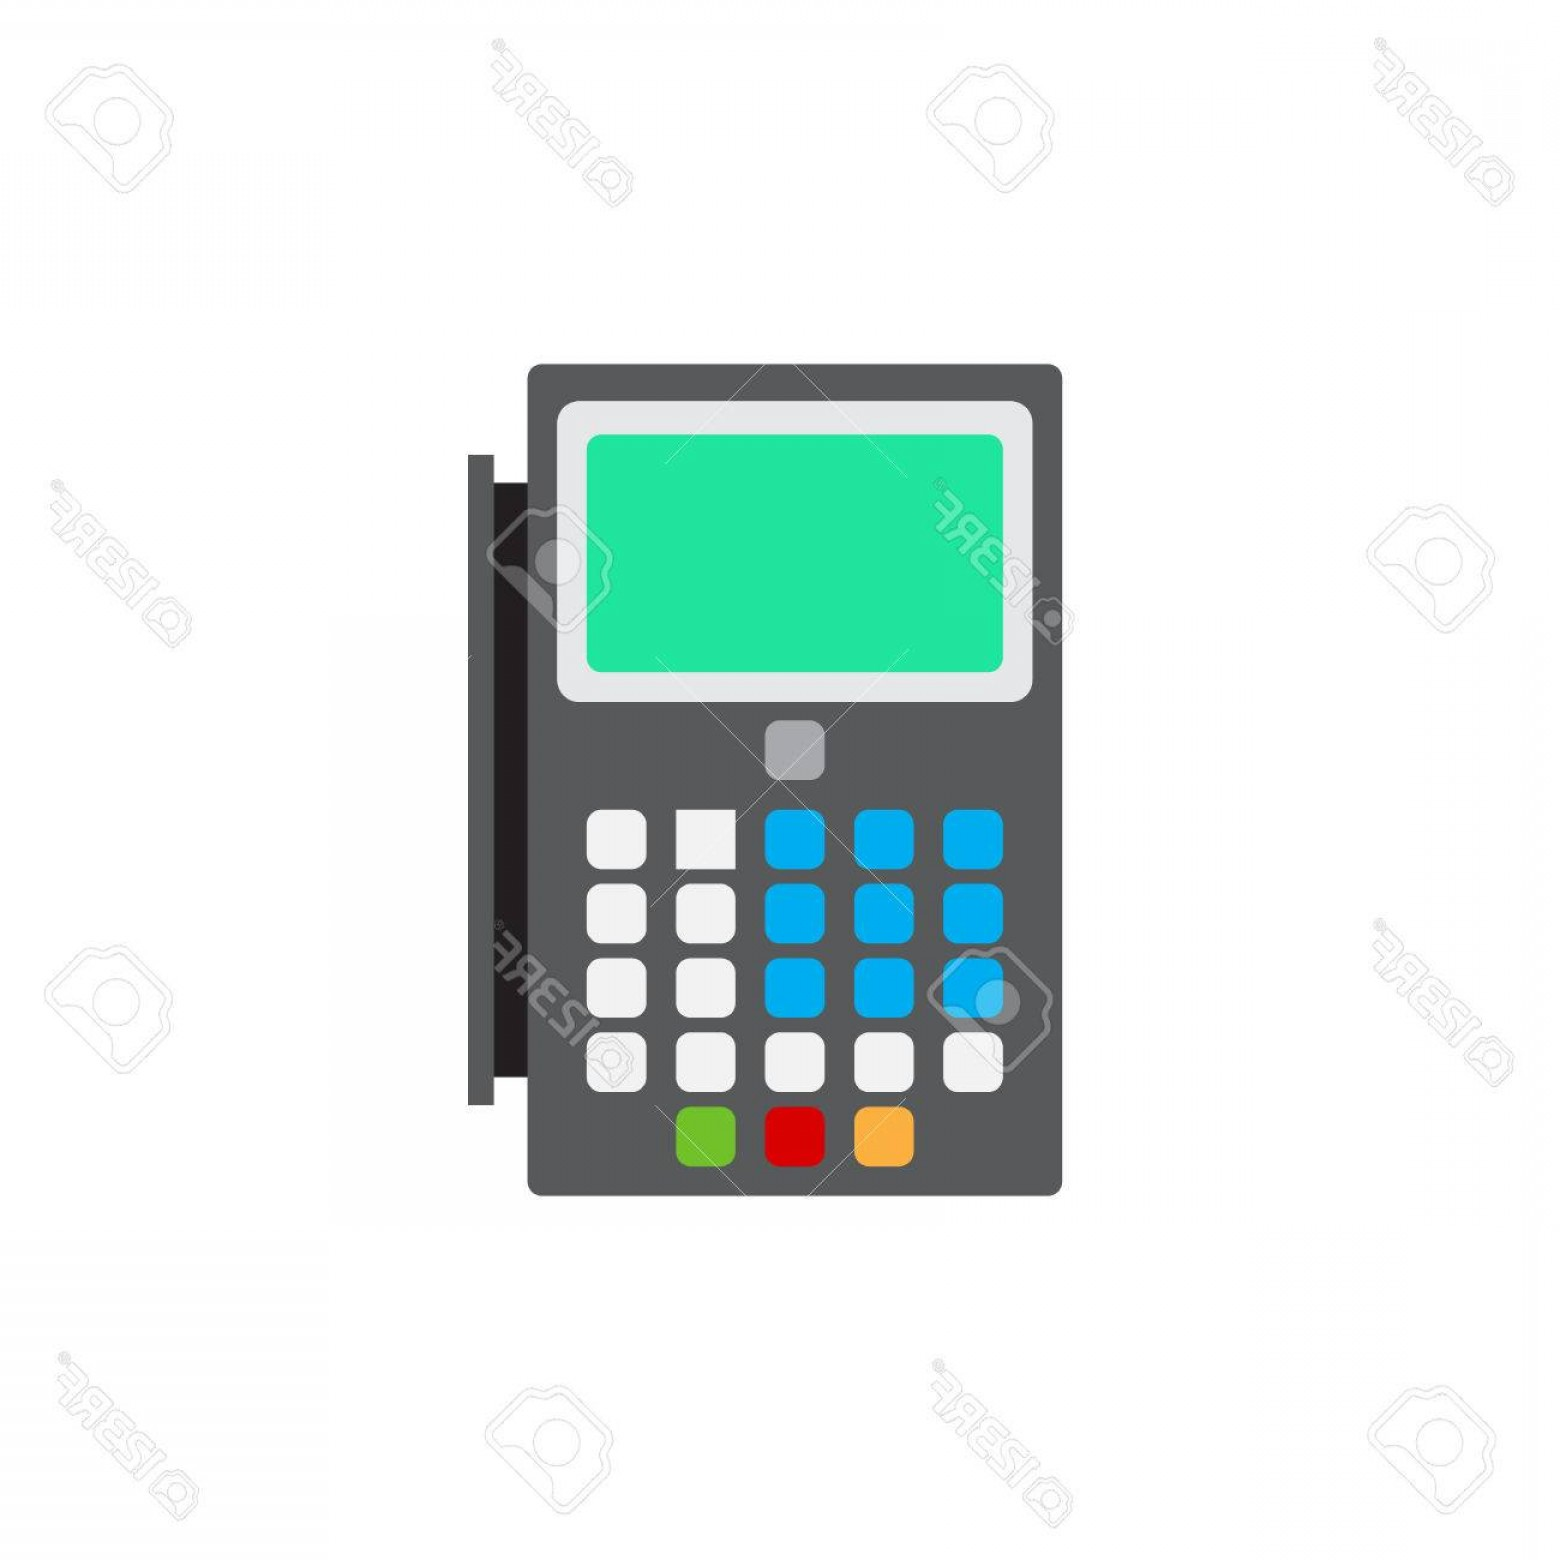 Point Of Sale Icon Vector: Photostock Vector Pos Terminal Flat Icon Vector Sign Colorful Pictogram Isolated On White Point Of Sale Symbol Logo Il